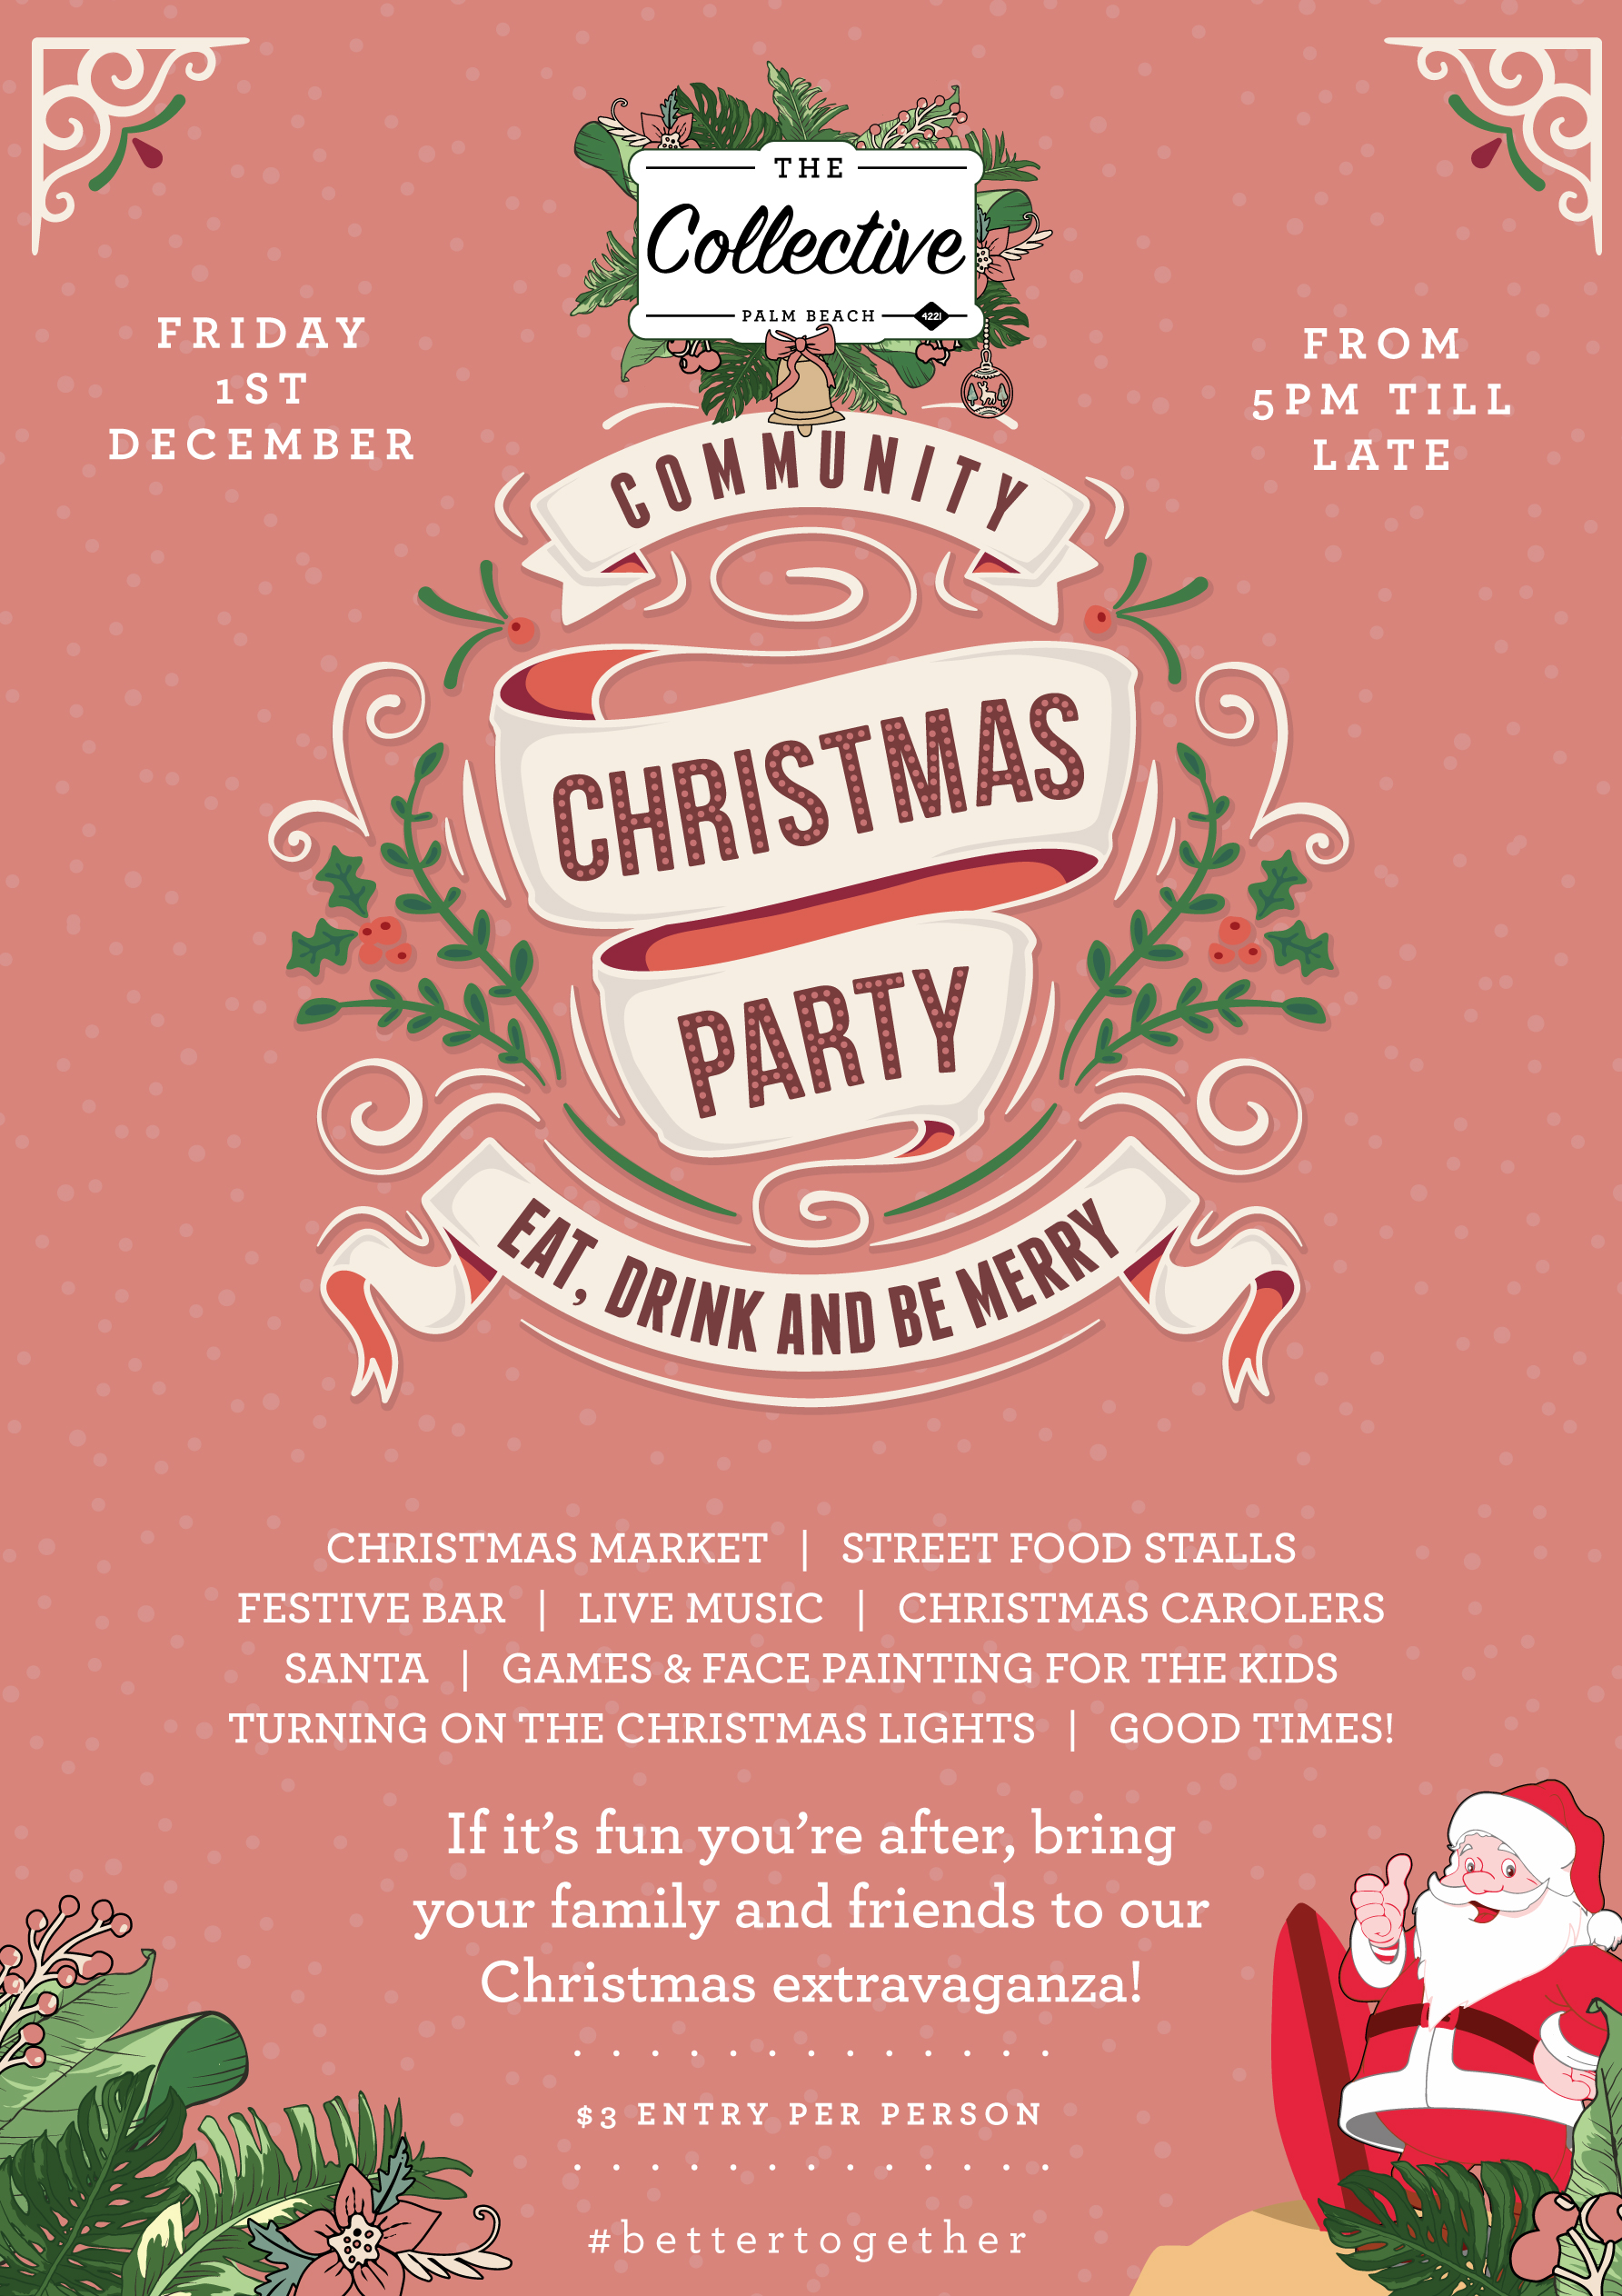 Collective_Christmas-Party-Poster-Web.jpg